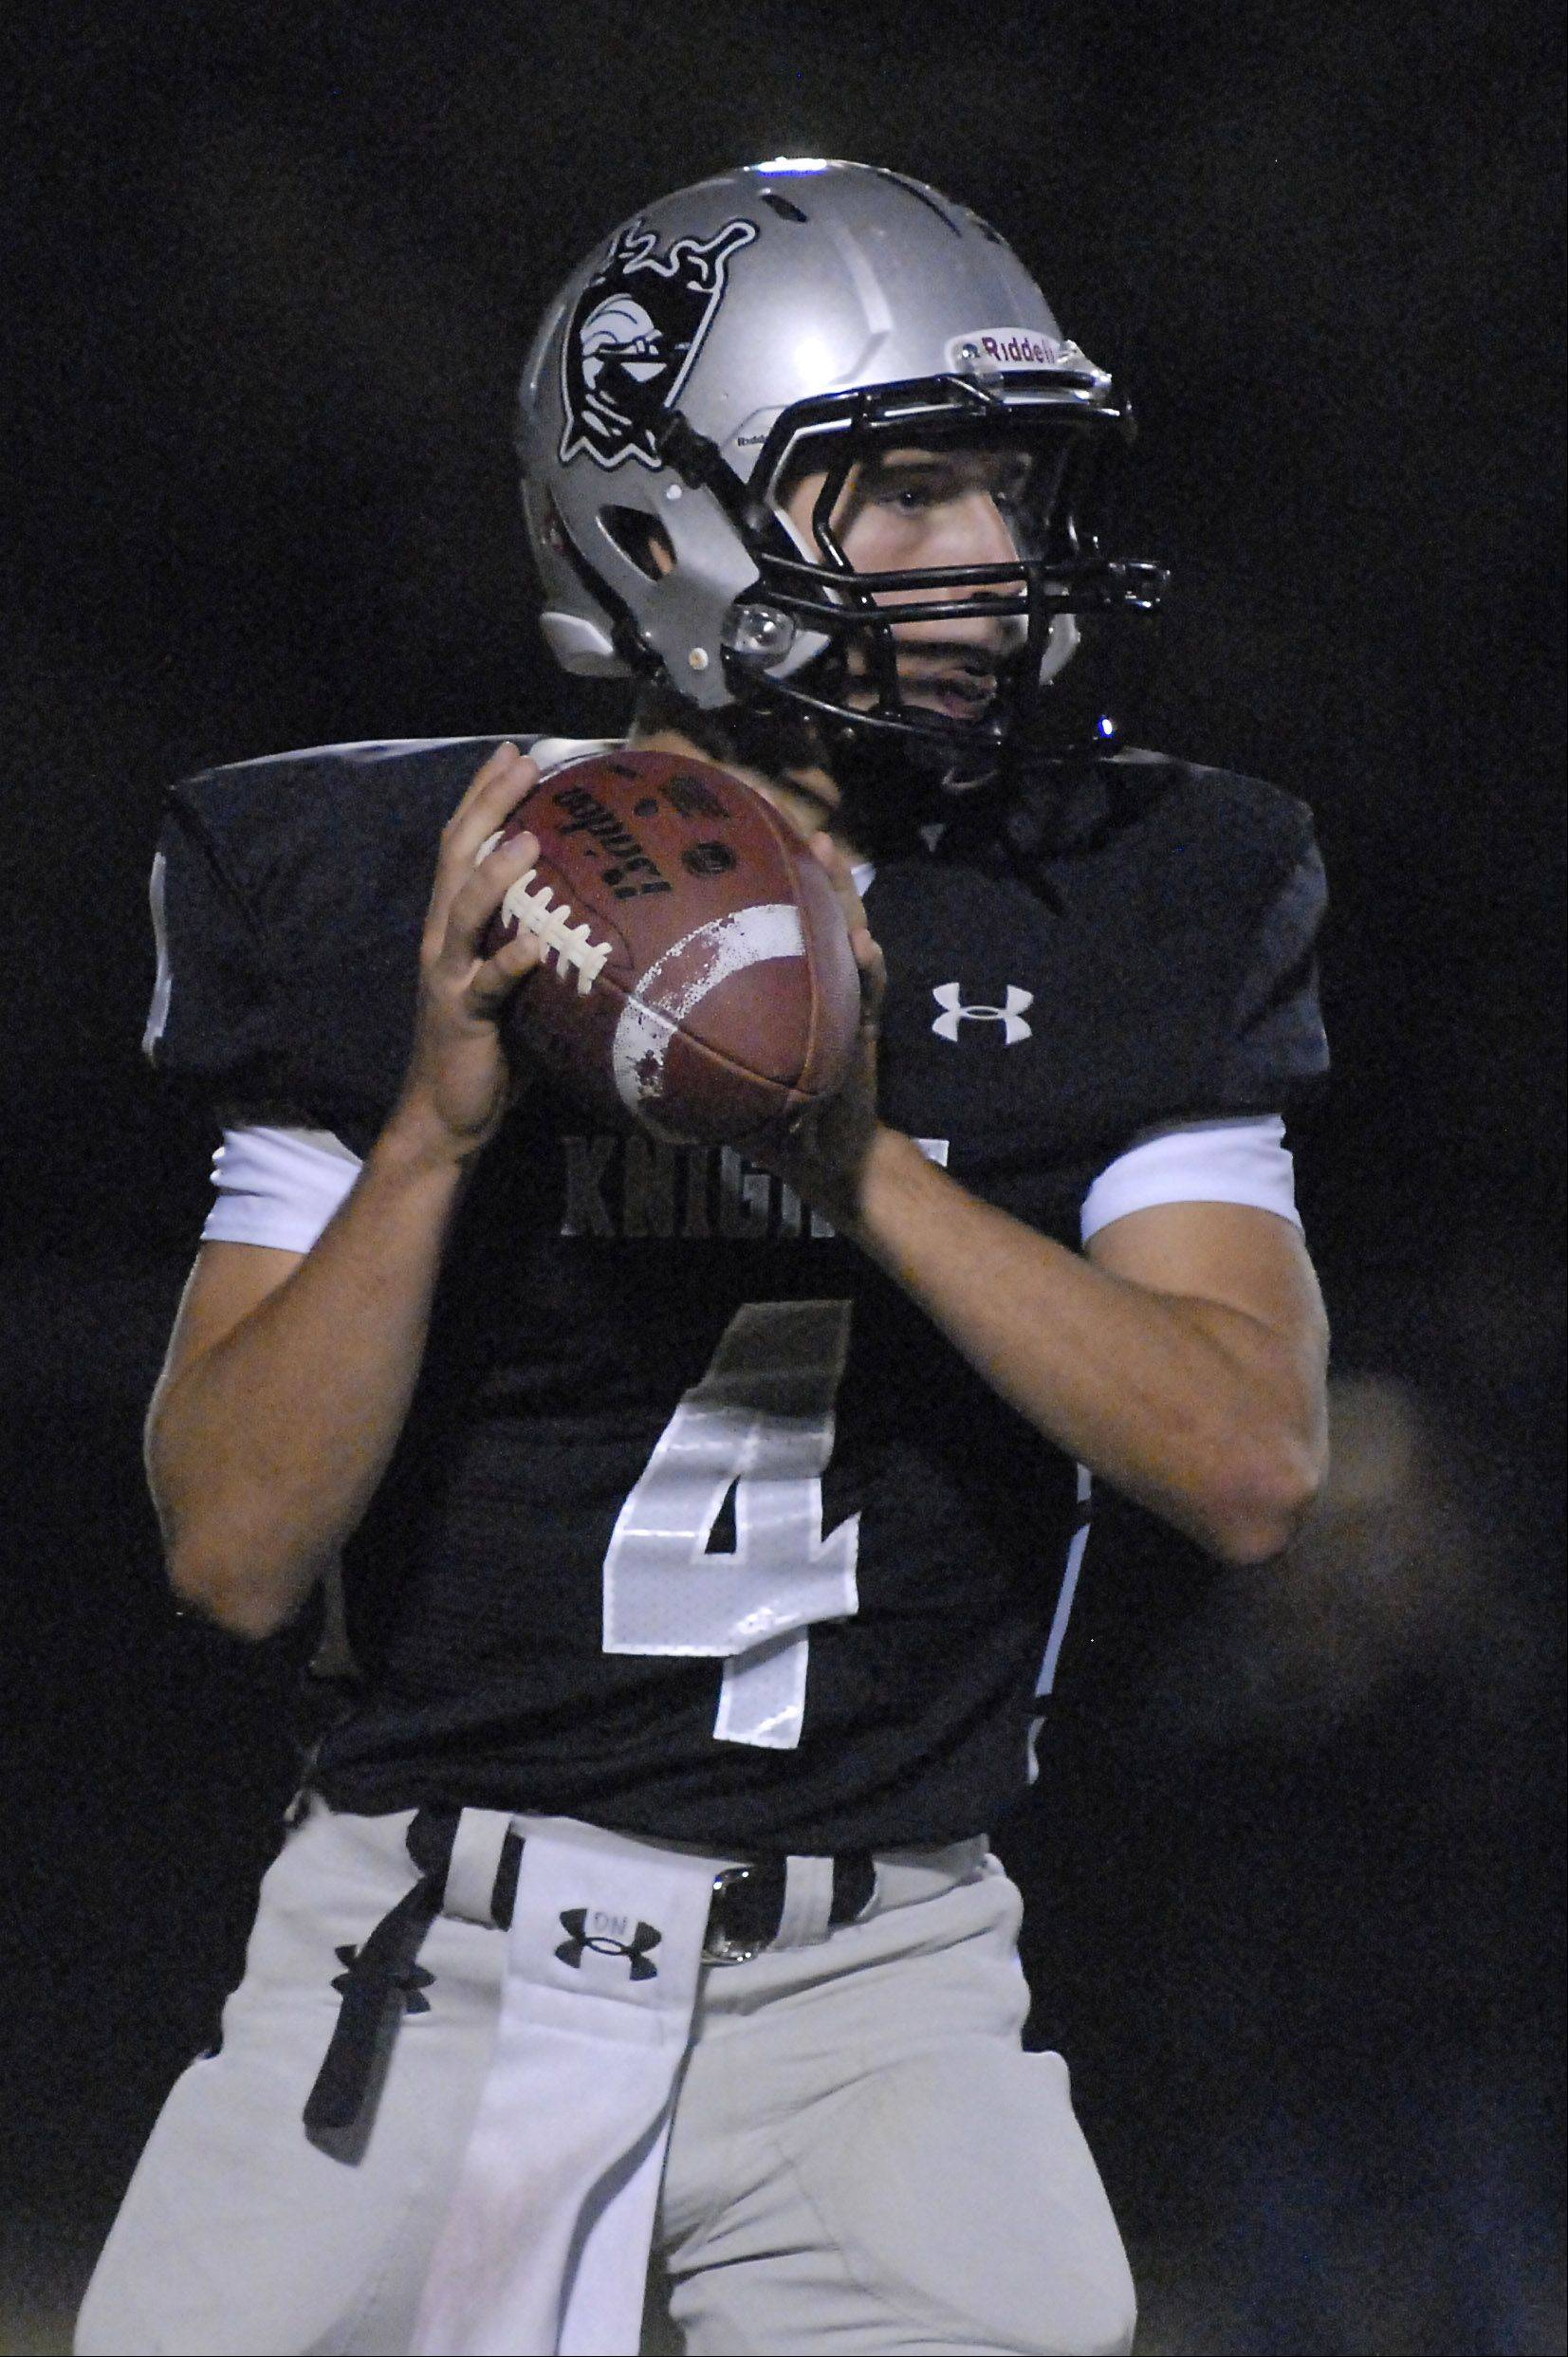 Kaneland quarterback Drew David looks to pass in the second quarter.